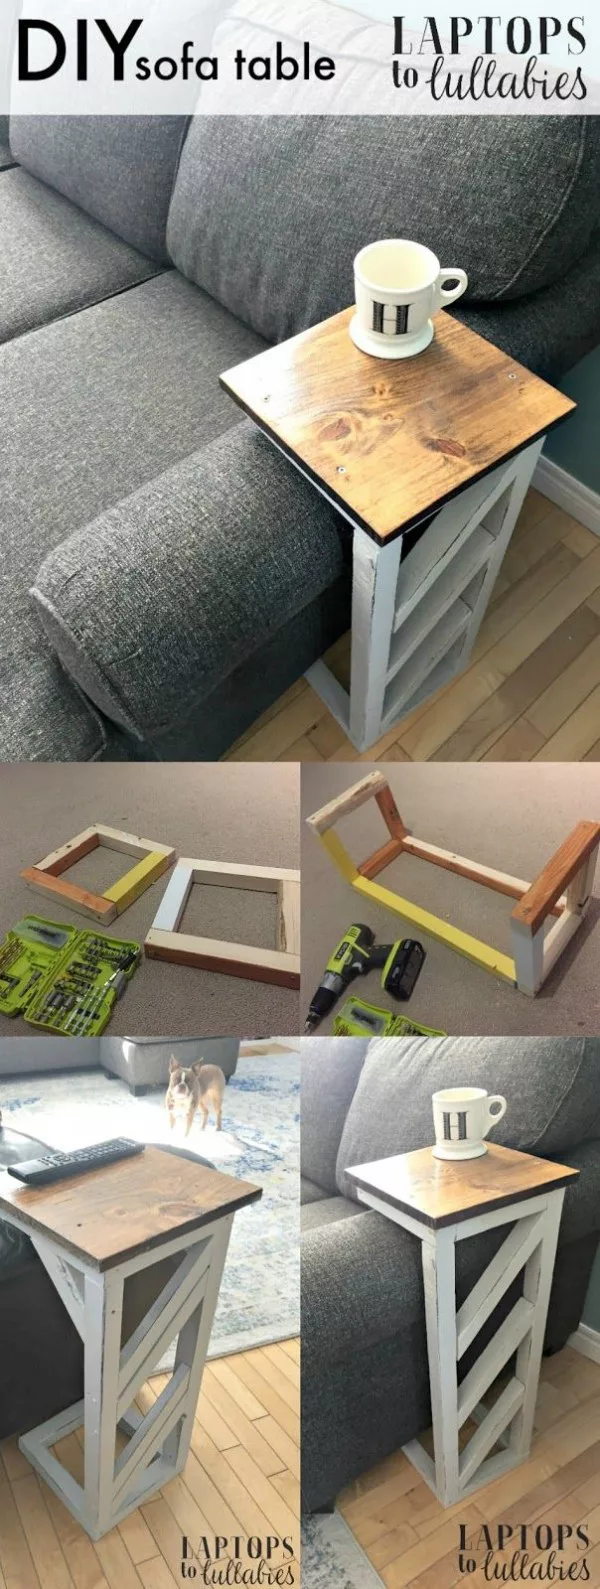 furniture to build